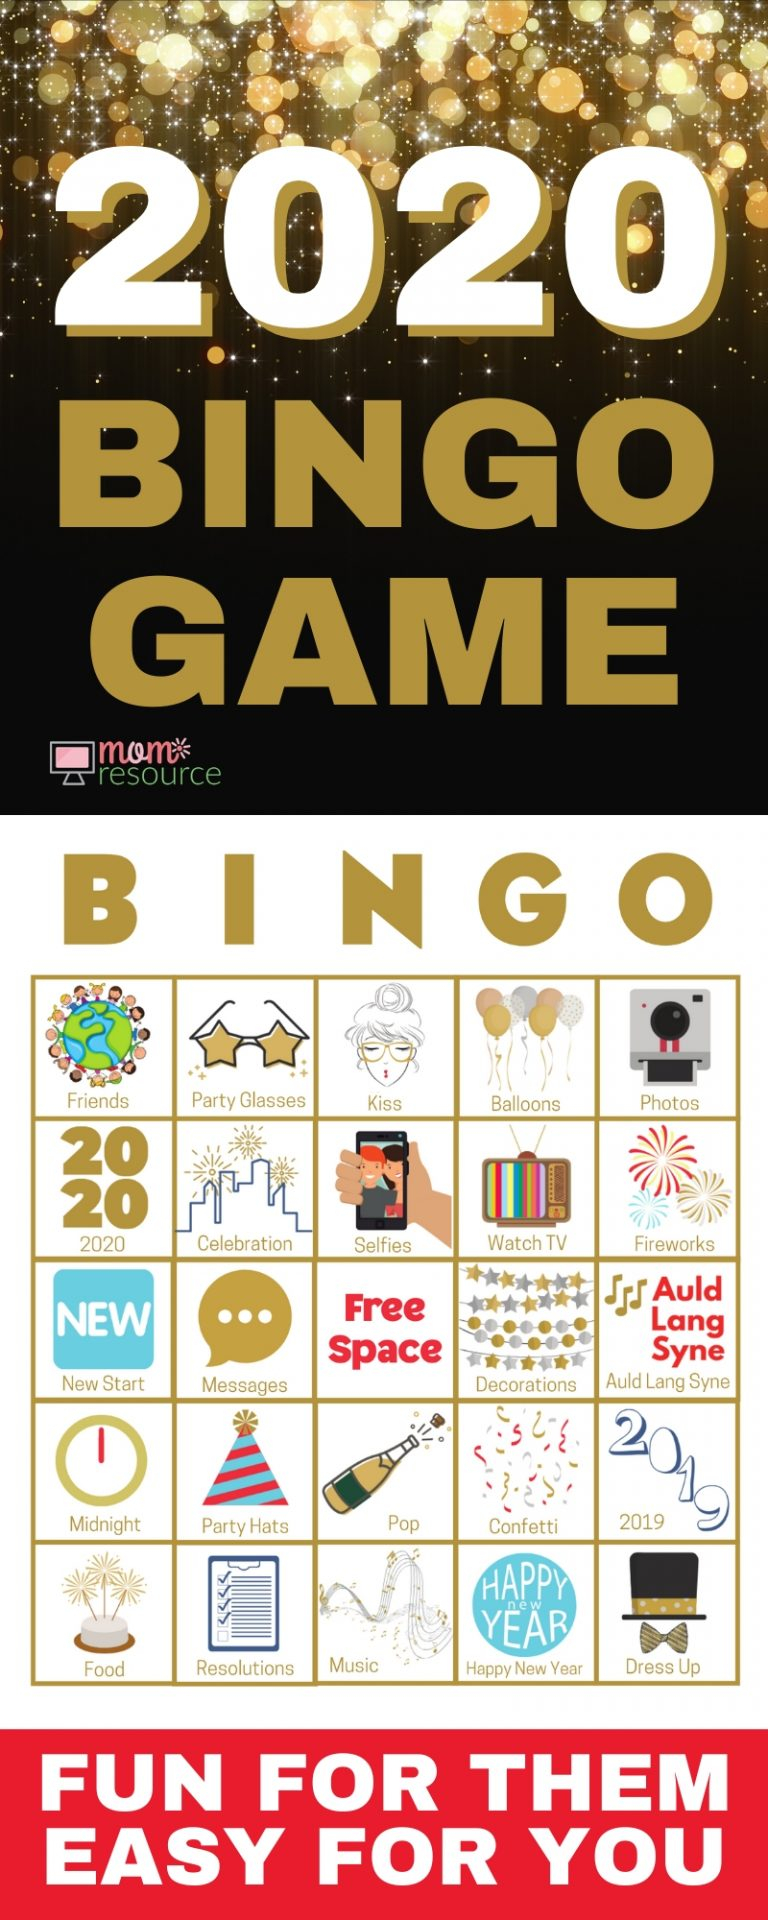 New Years Even Bingo Cards - Easy To Play, Modern & Fun